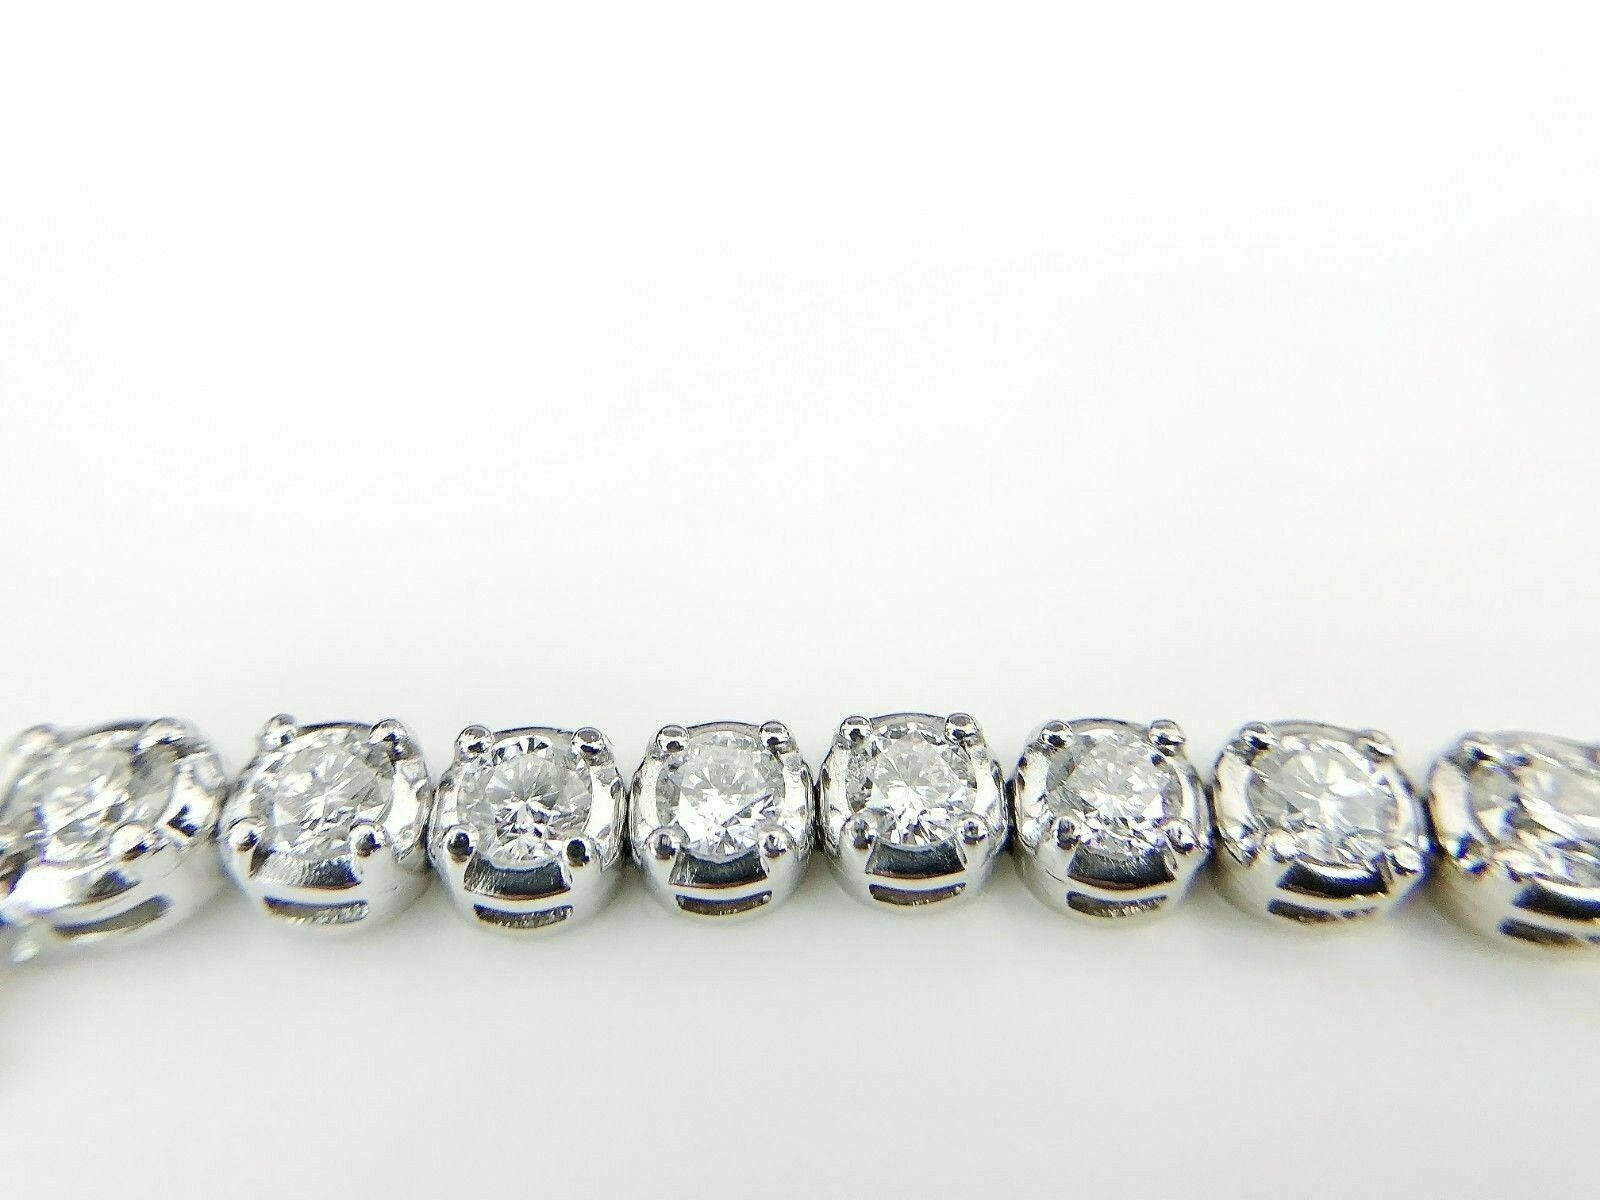 7.25 tcw Round Brilliant Diamond Tennis Bracelet in 14K White Gold